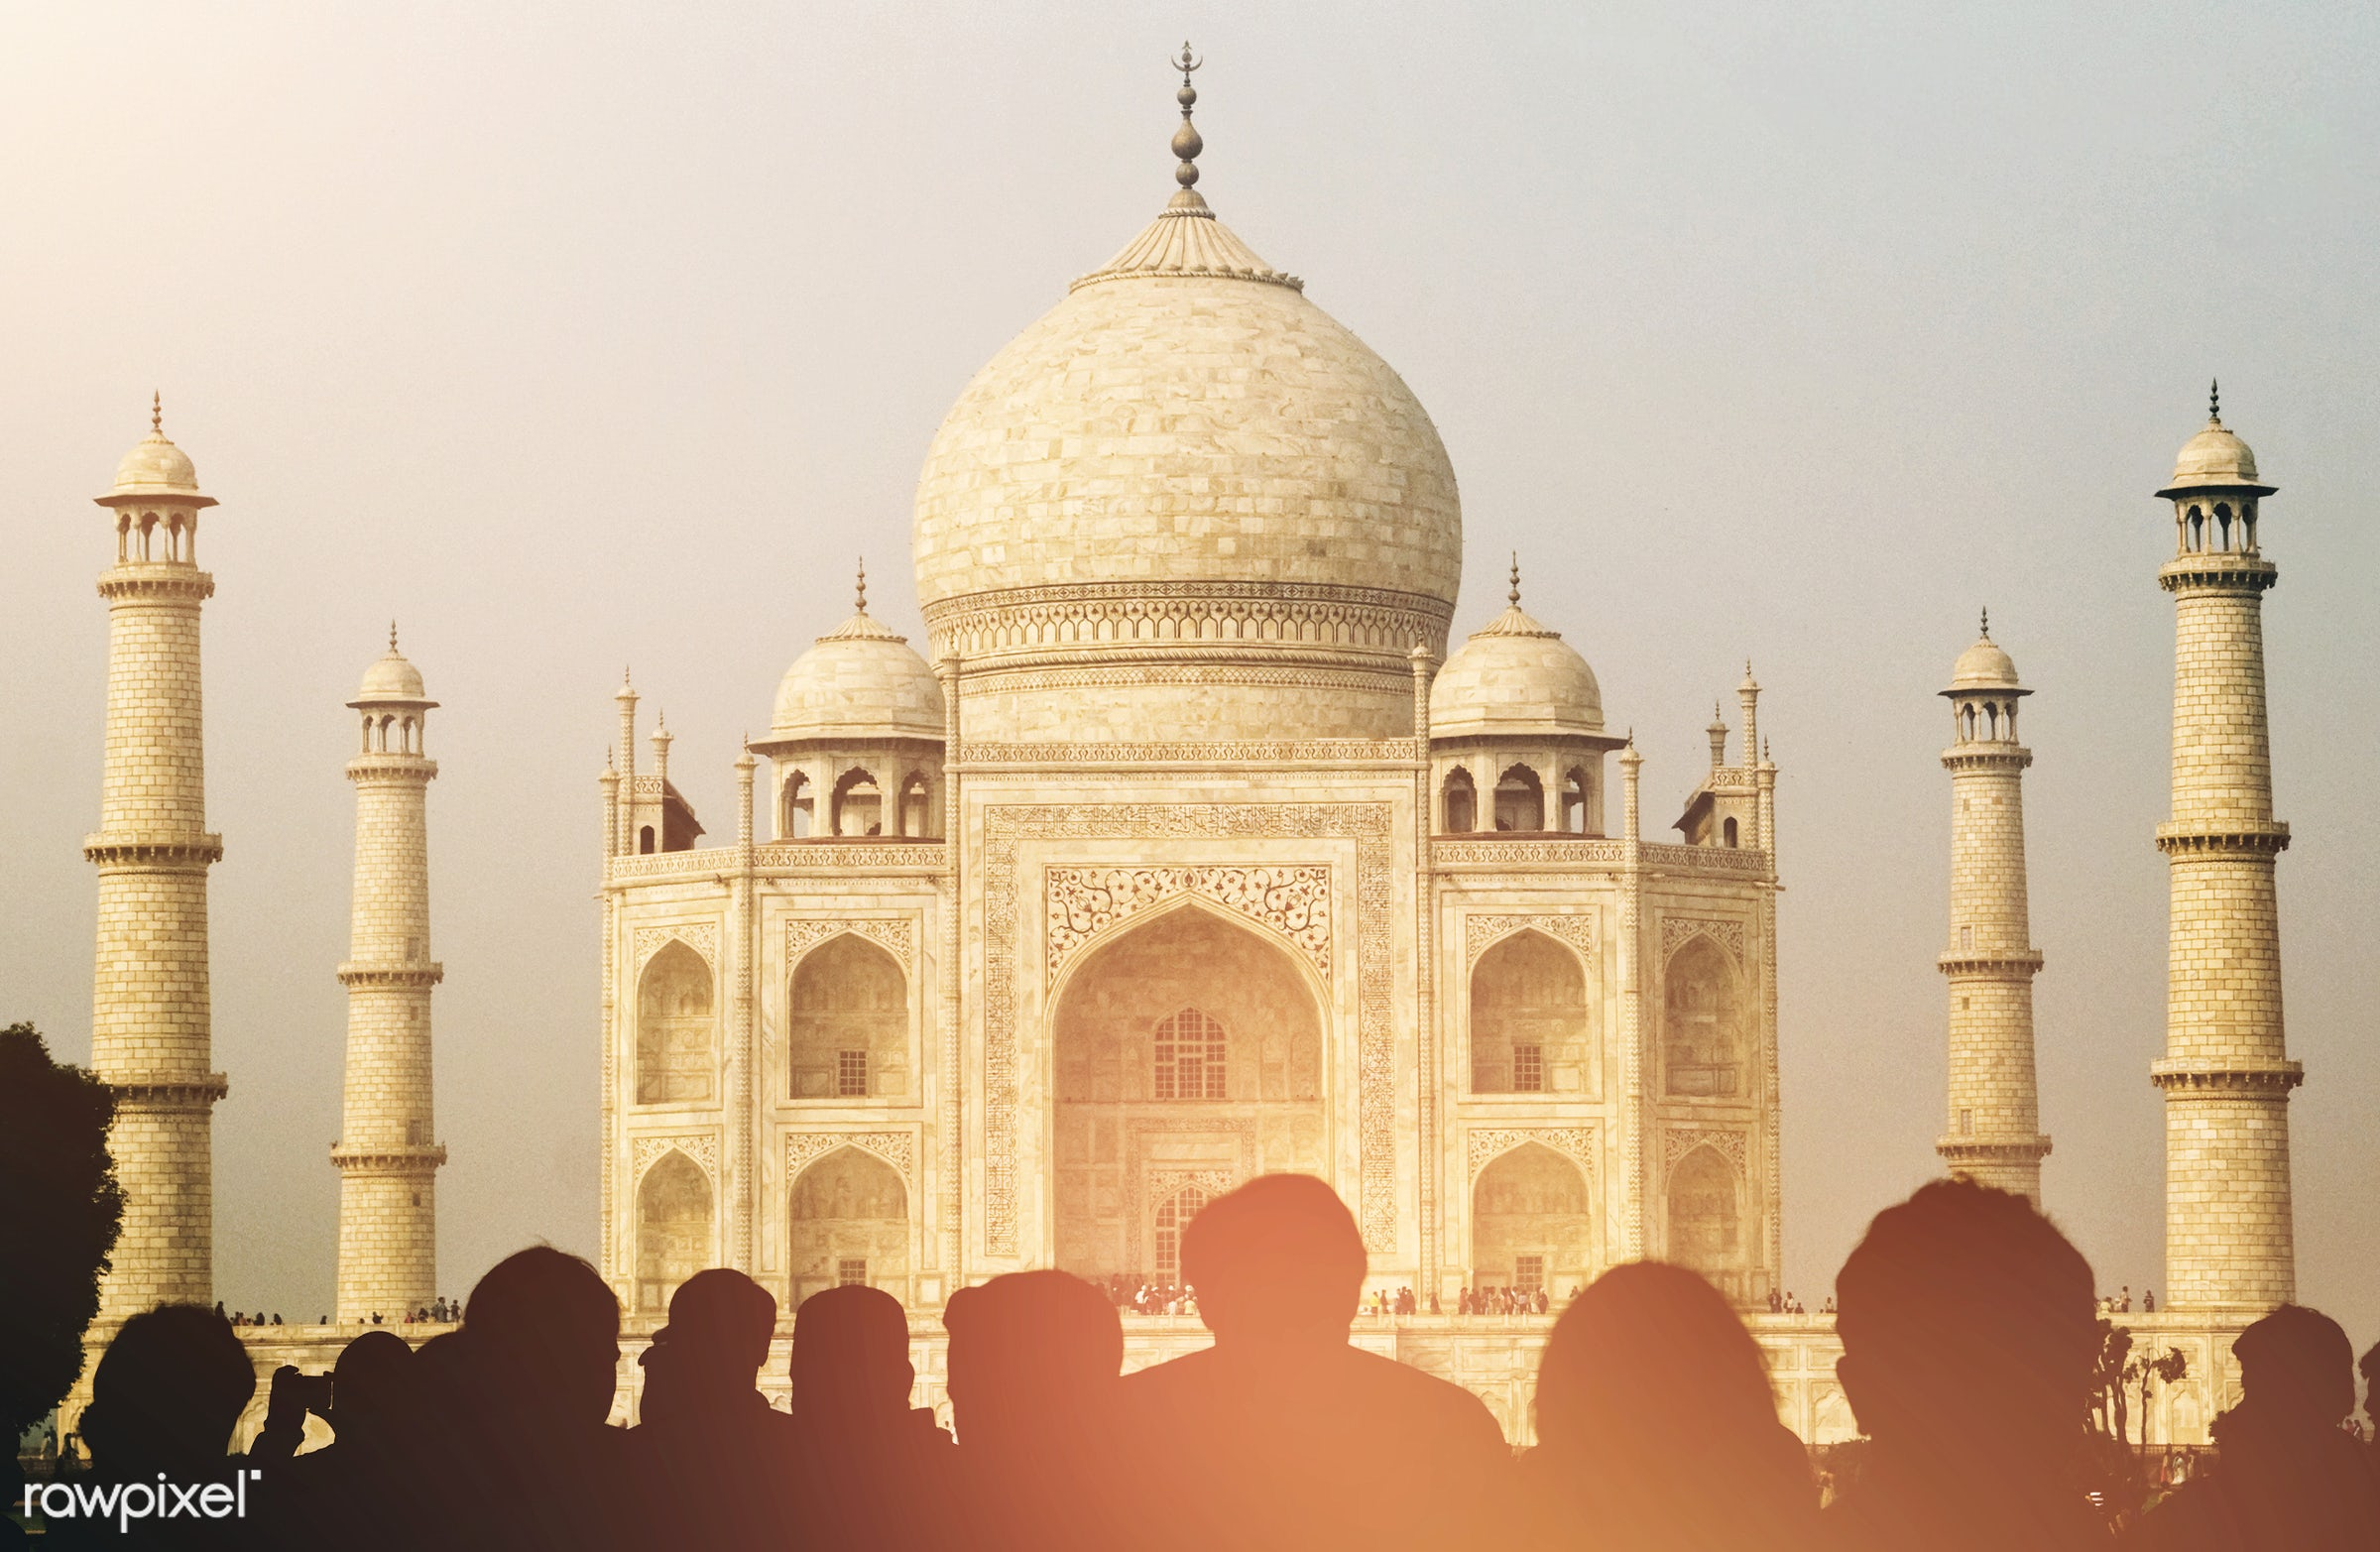 View of Taj Mahal with tourist silhouettes - 7 wonders, architectural styles, architecture, architecture and buildings, asia...